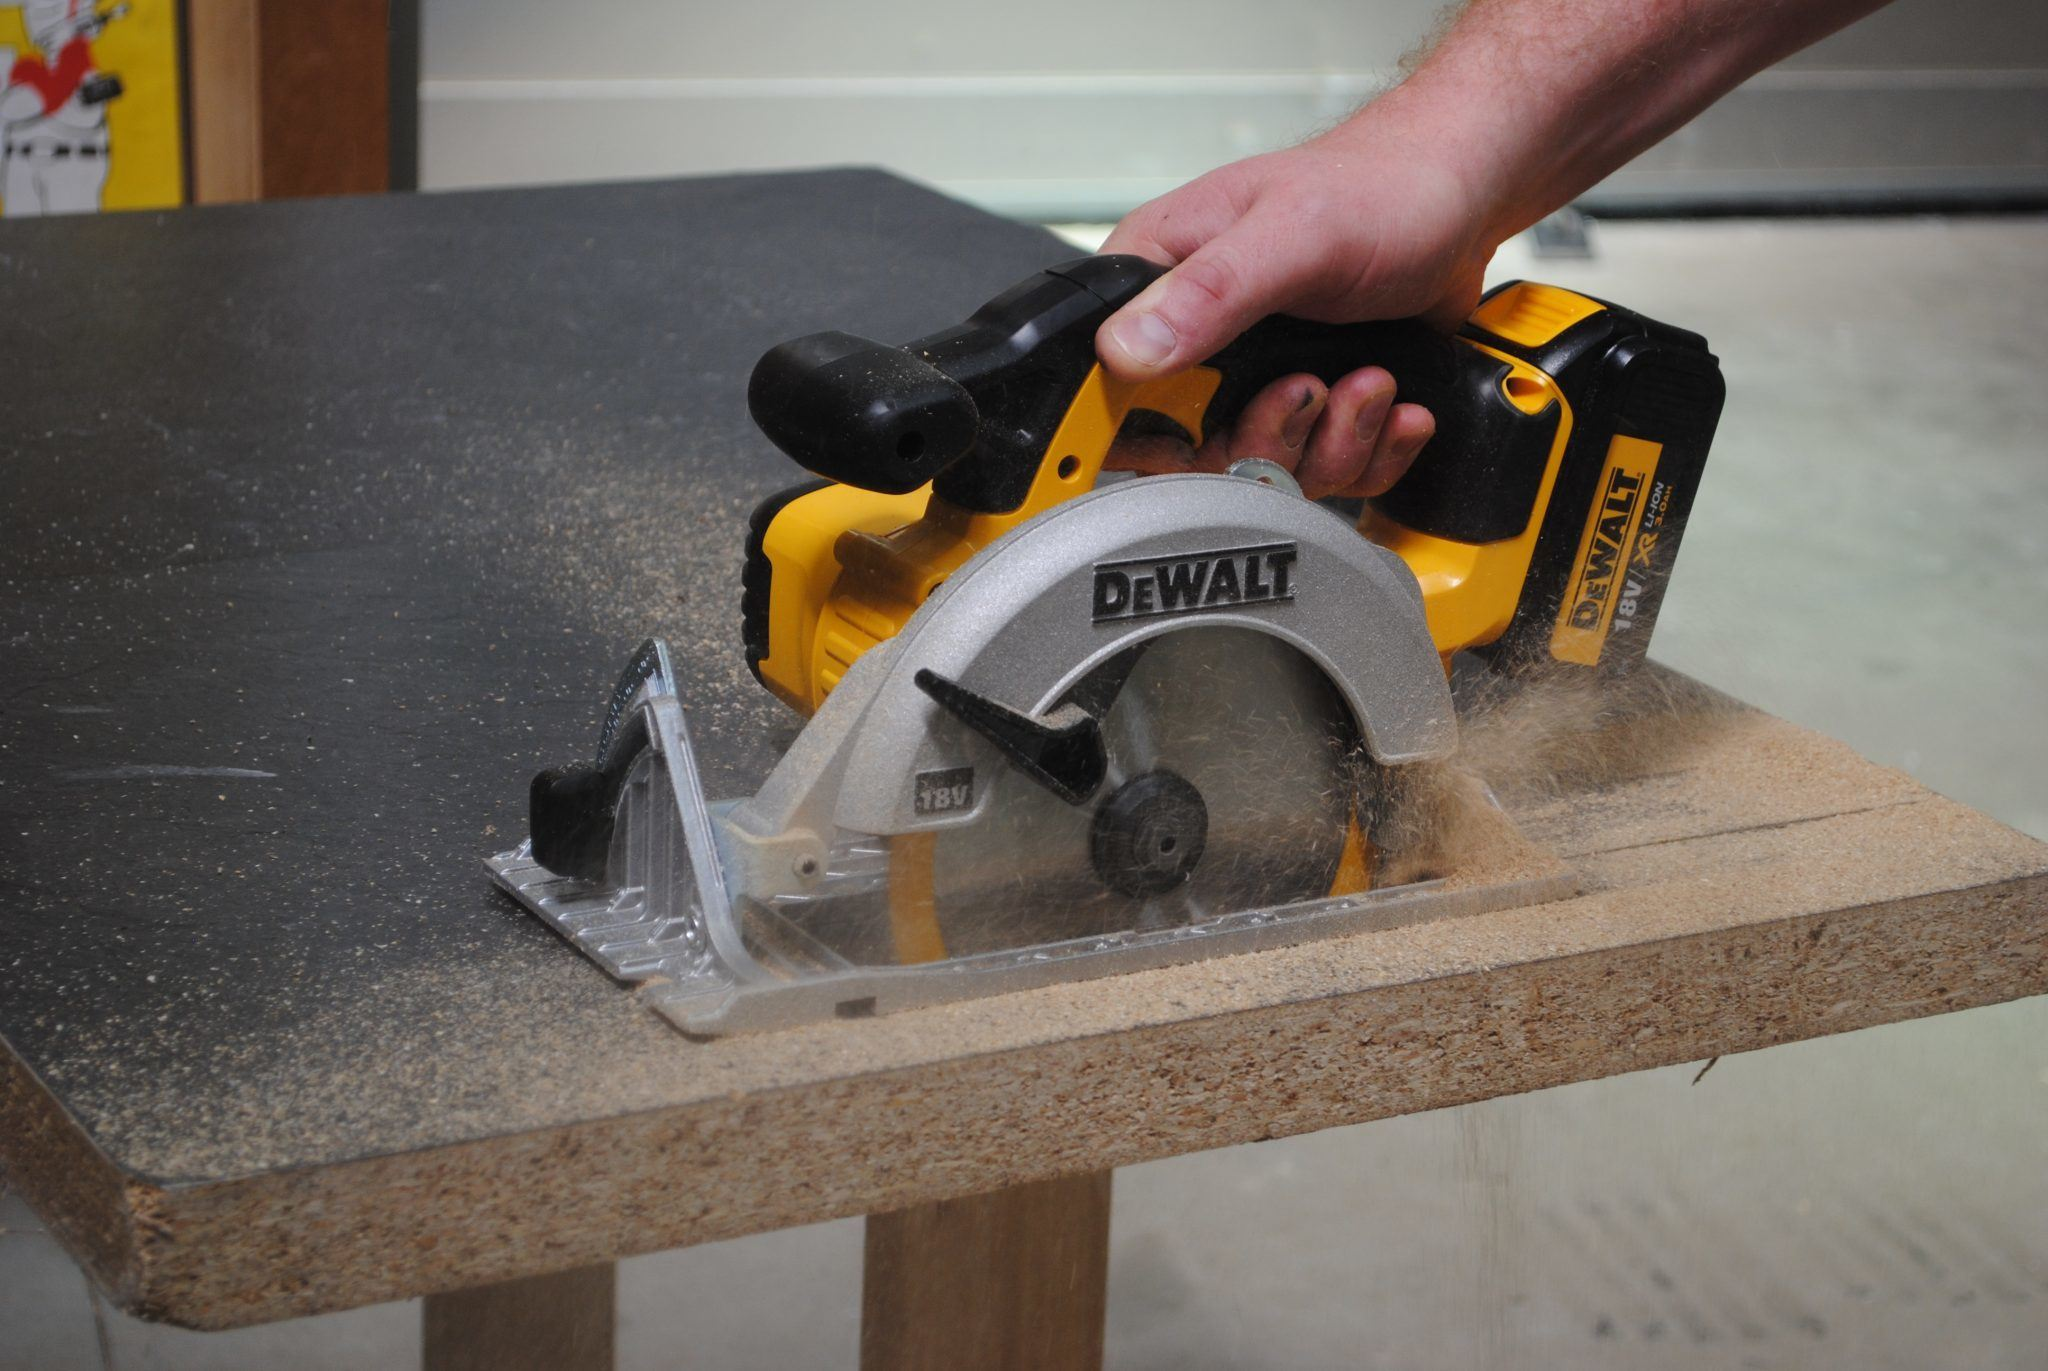 a woodworker cutting a board with a circular saw